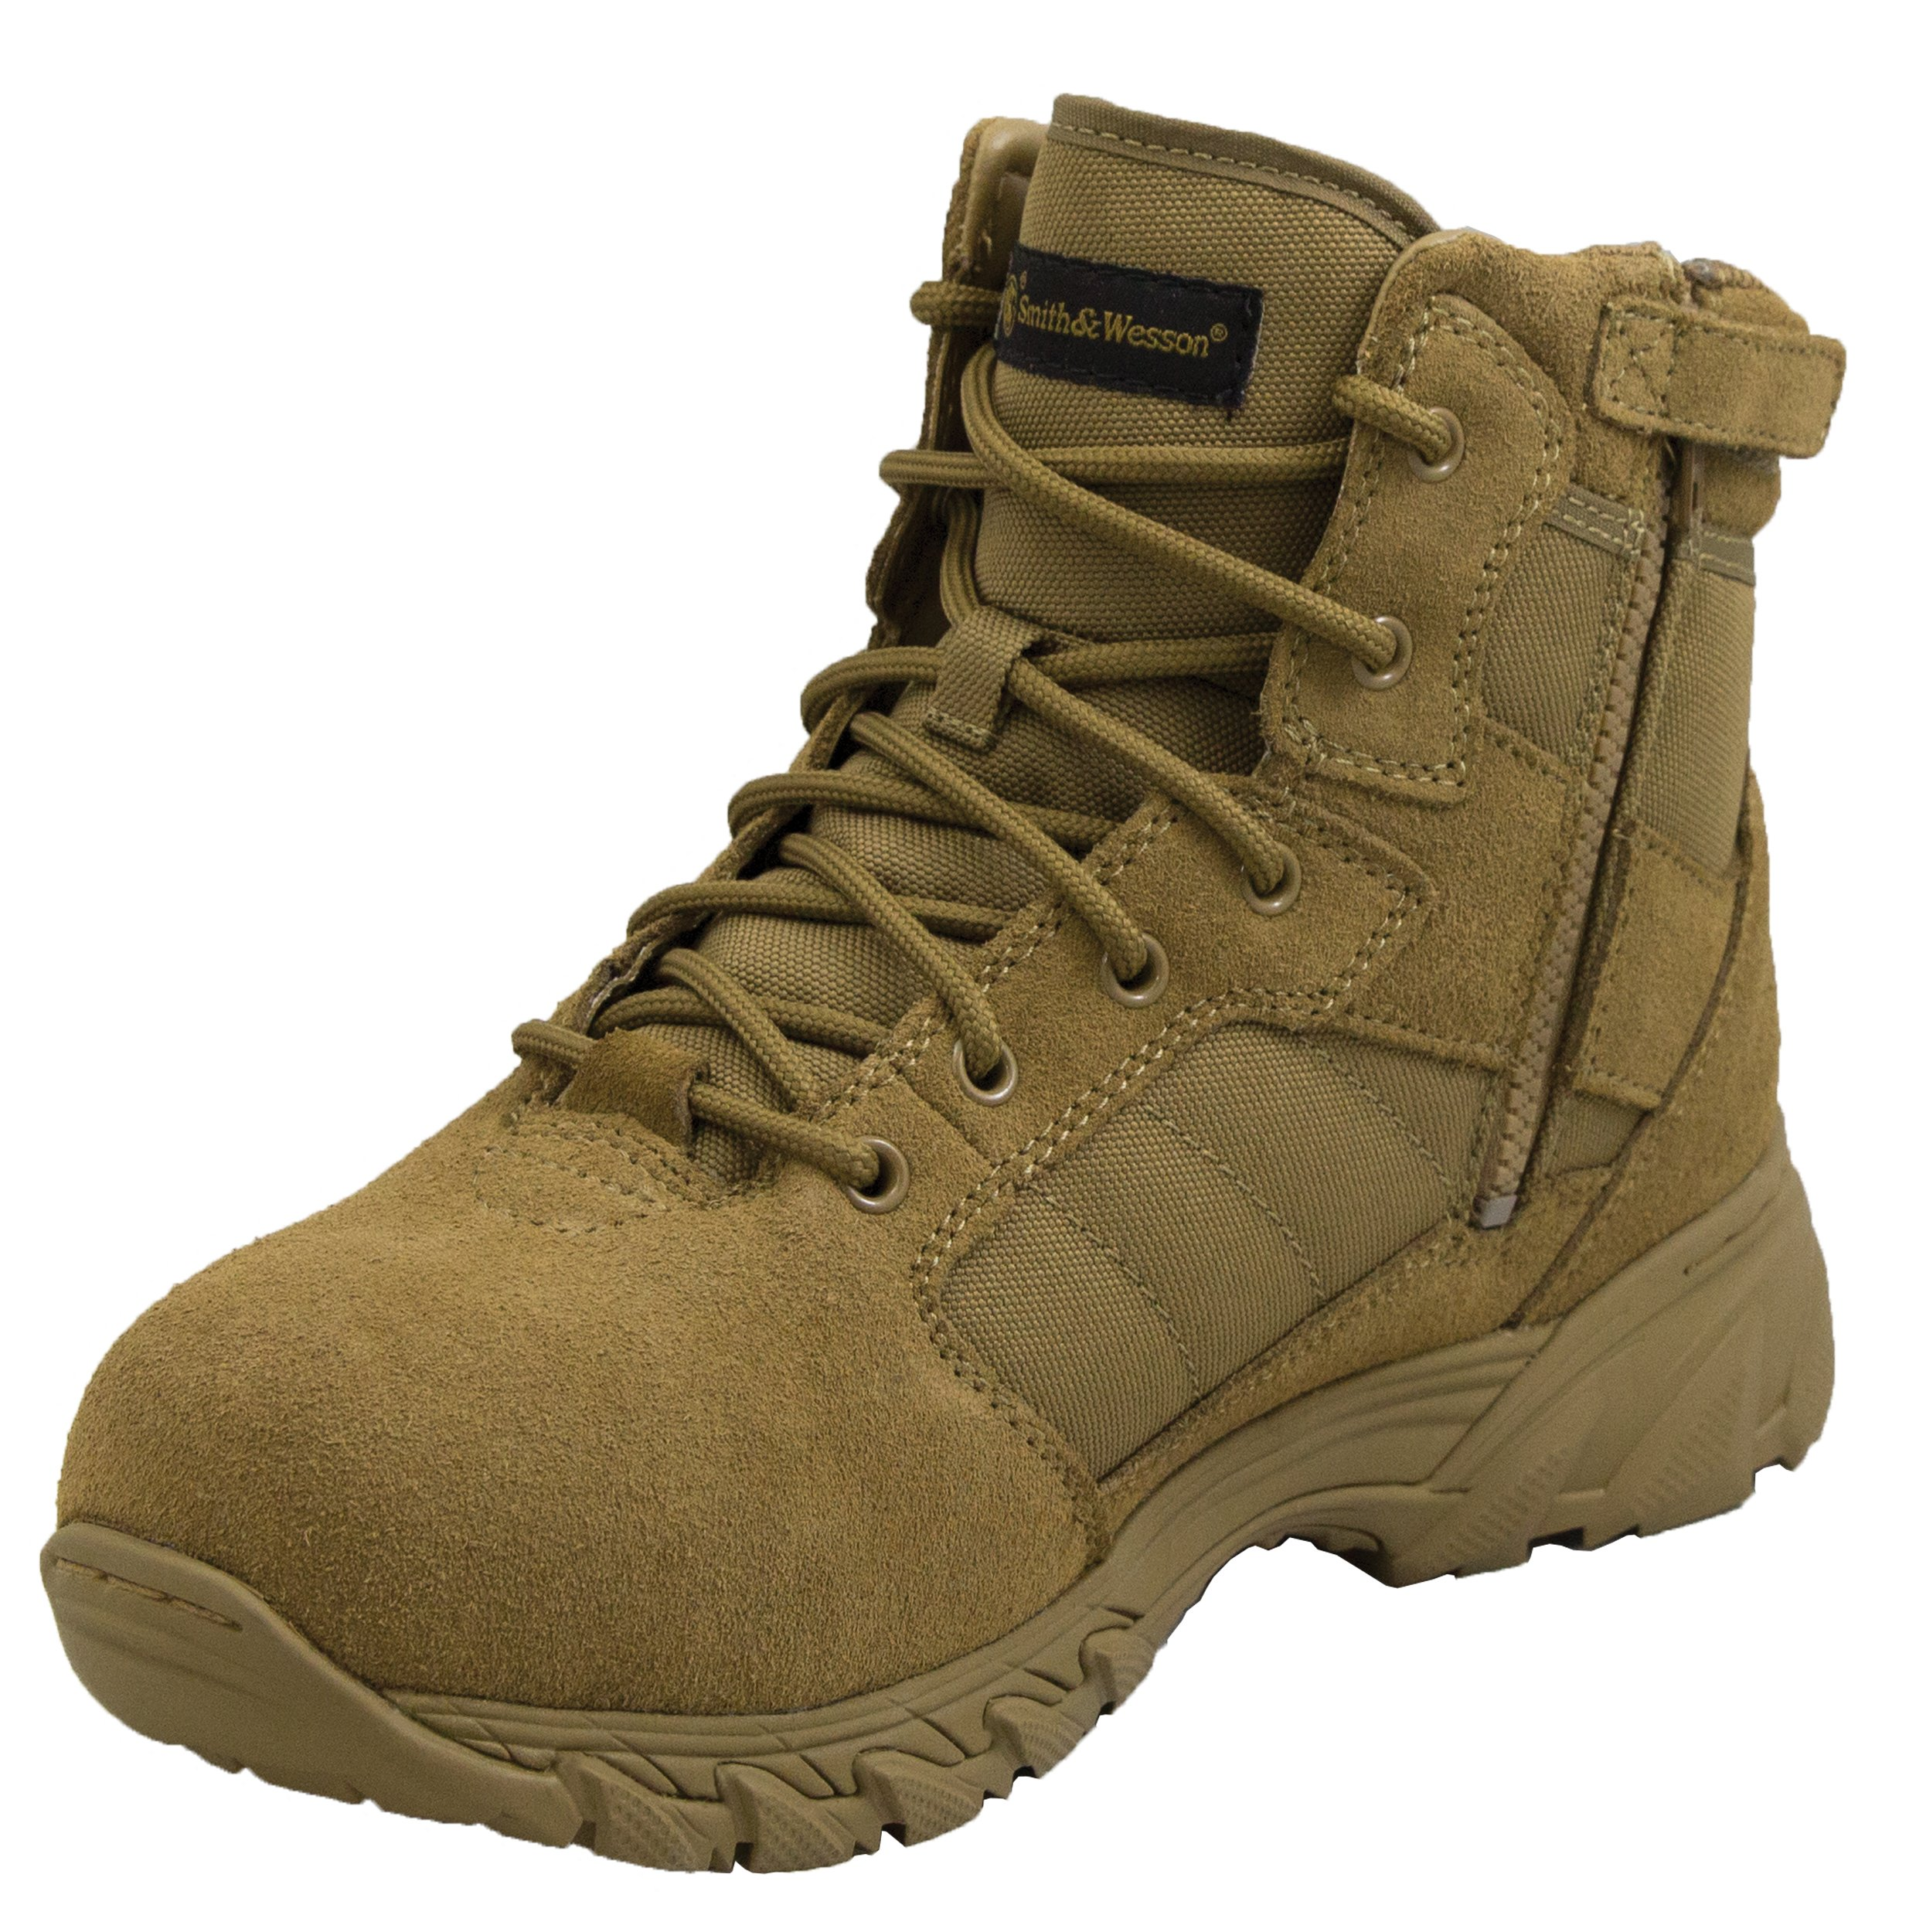 Smith & Wesson Men's Breach 2.0 Side Zip Tactical Boots, Coyote, 10 by Smith & Wesson